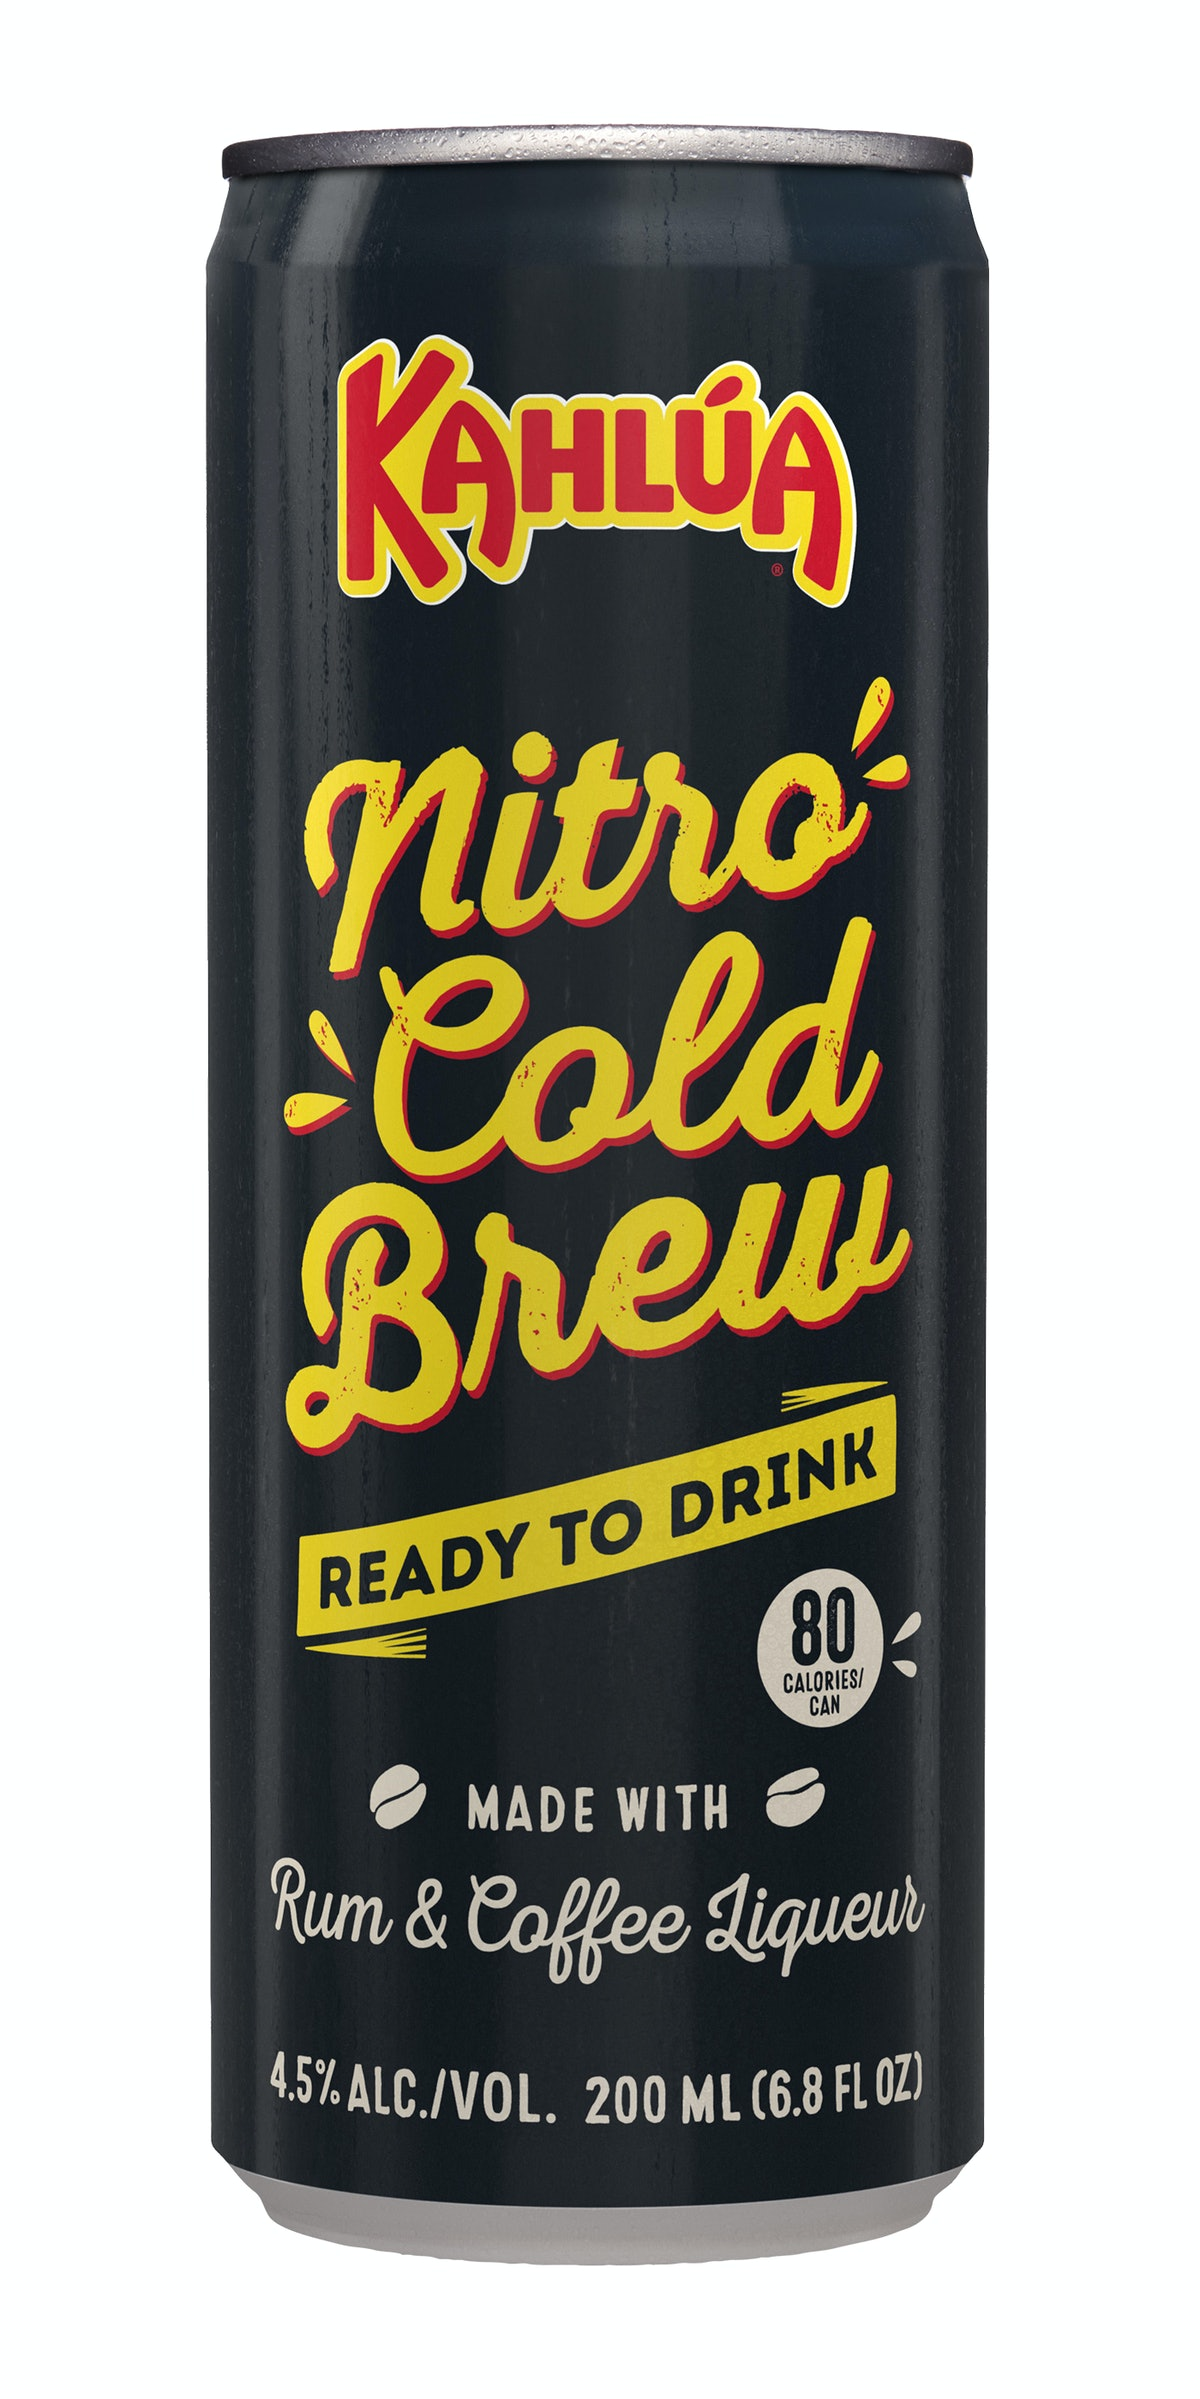 Kahlúa's new Nitro Cold Brew Cans feature rum and 100% Arabica cold brew.